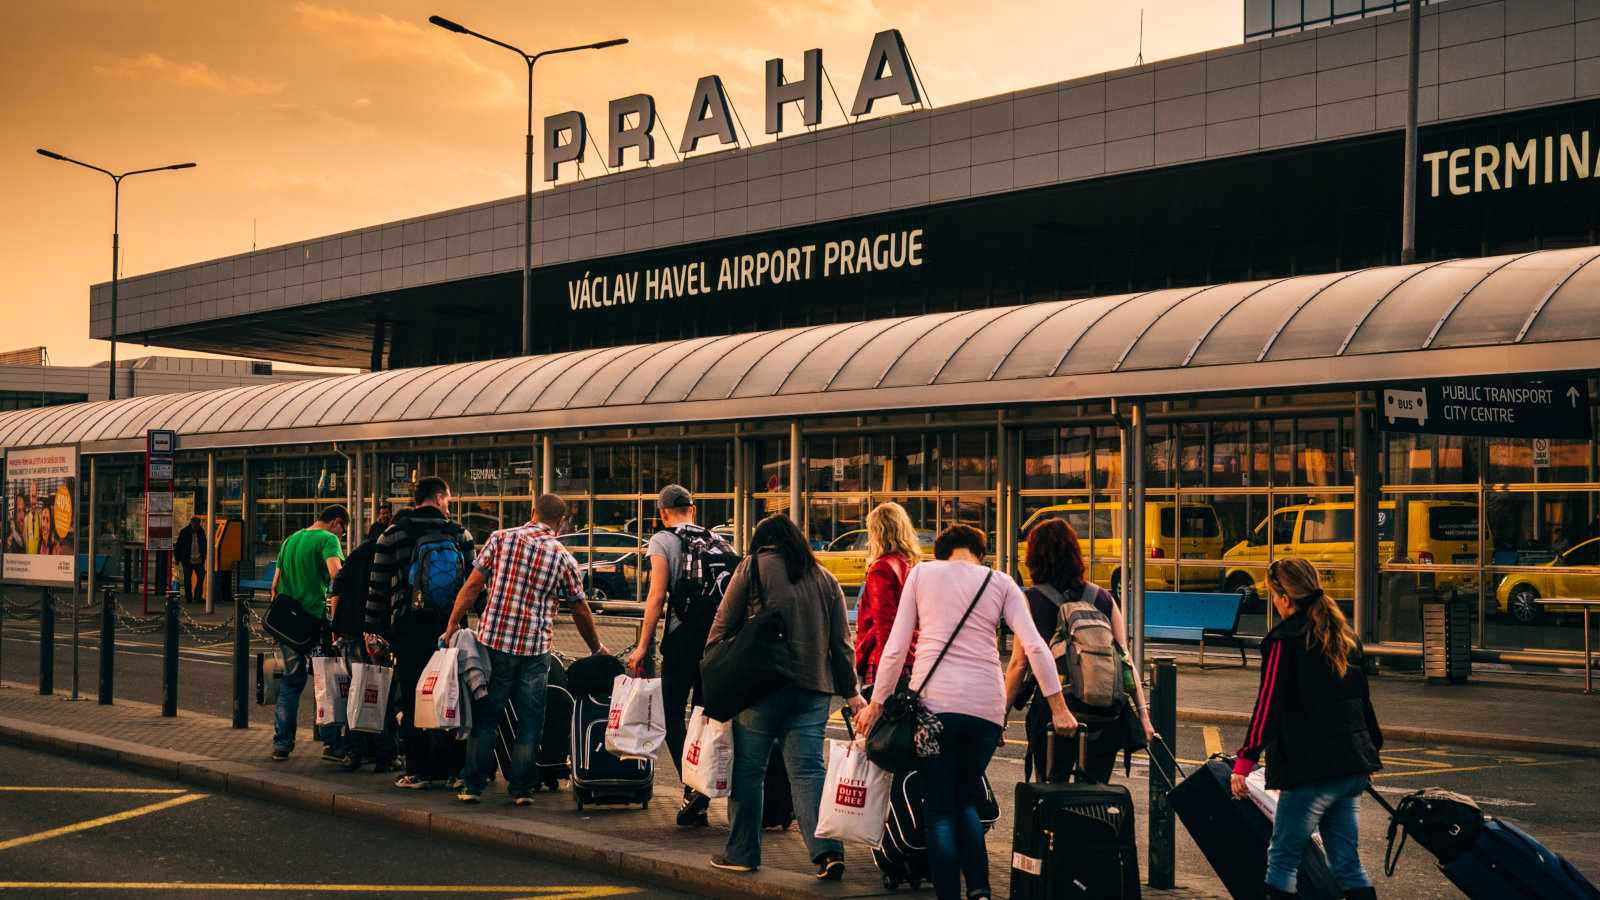 There are a number of public buses to get from Prague airport to the city centre